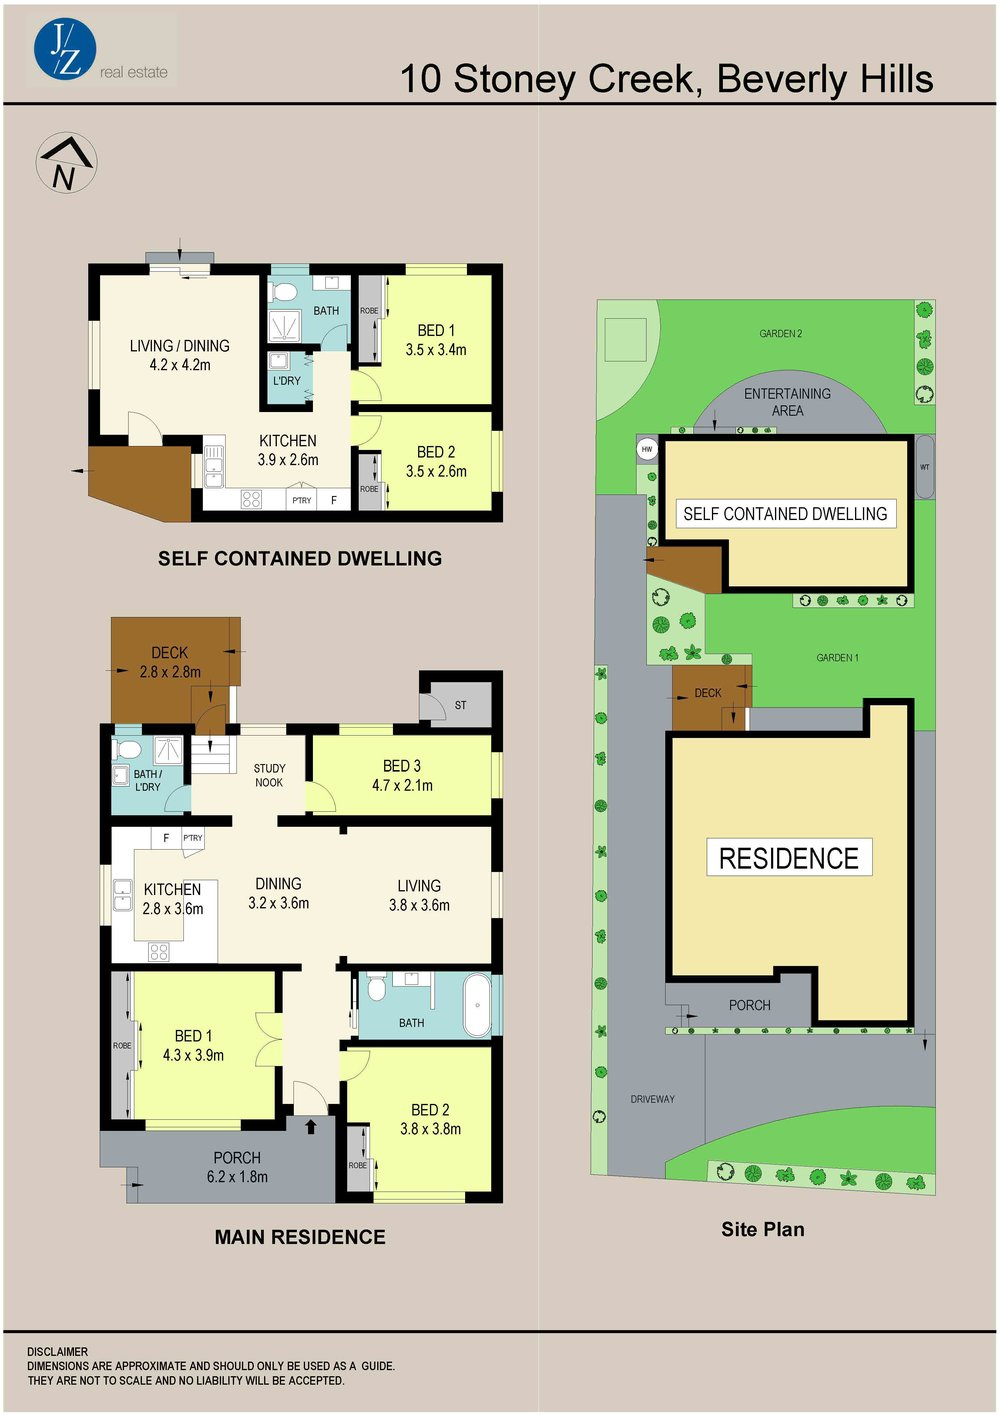 FloorPlan_Web32158405.jpg